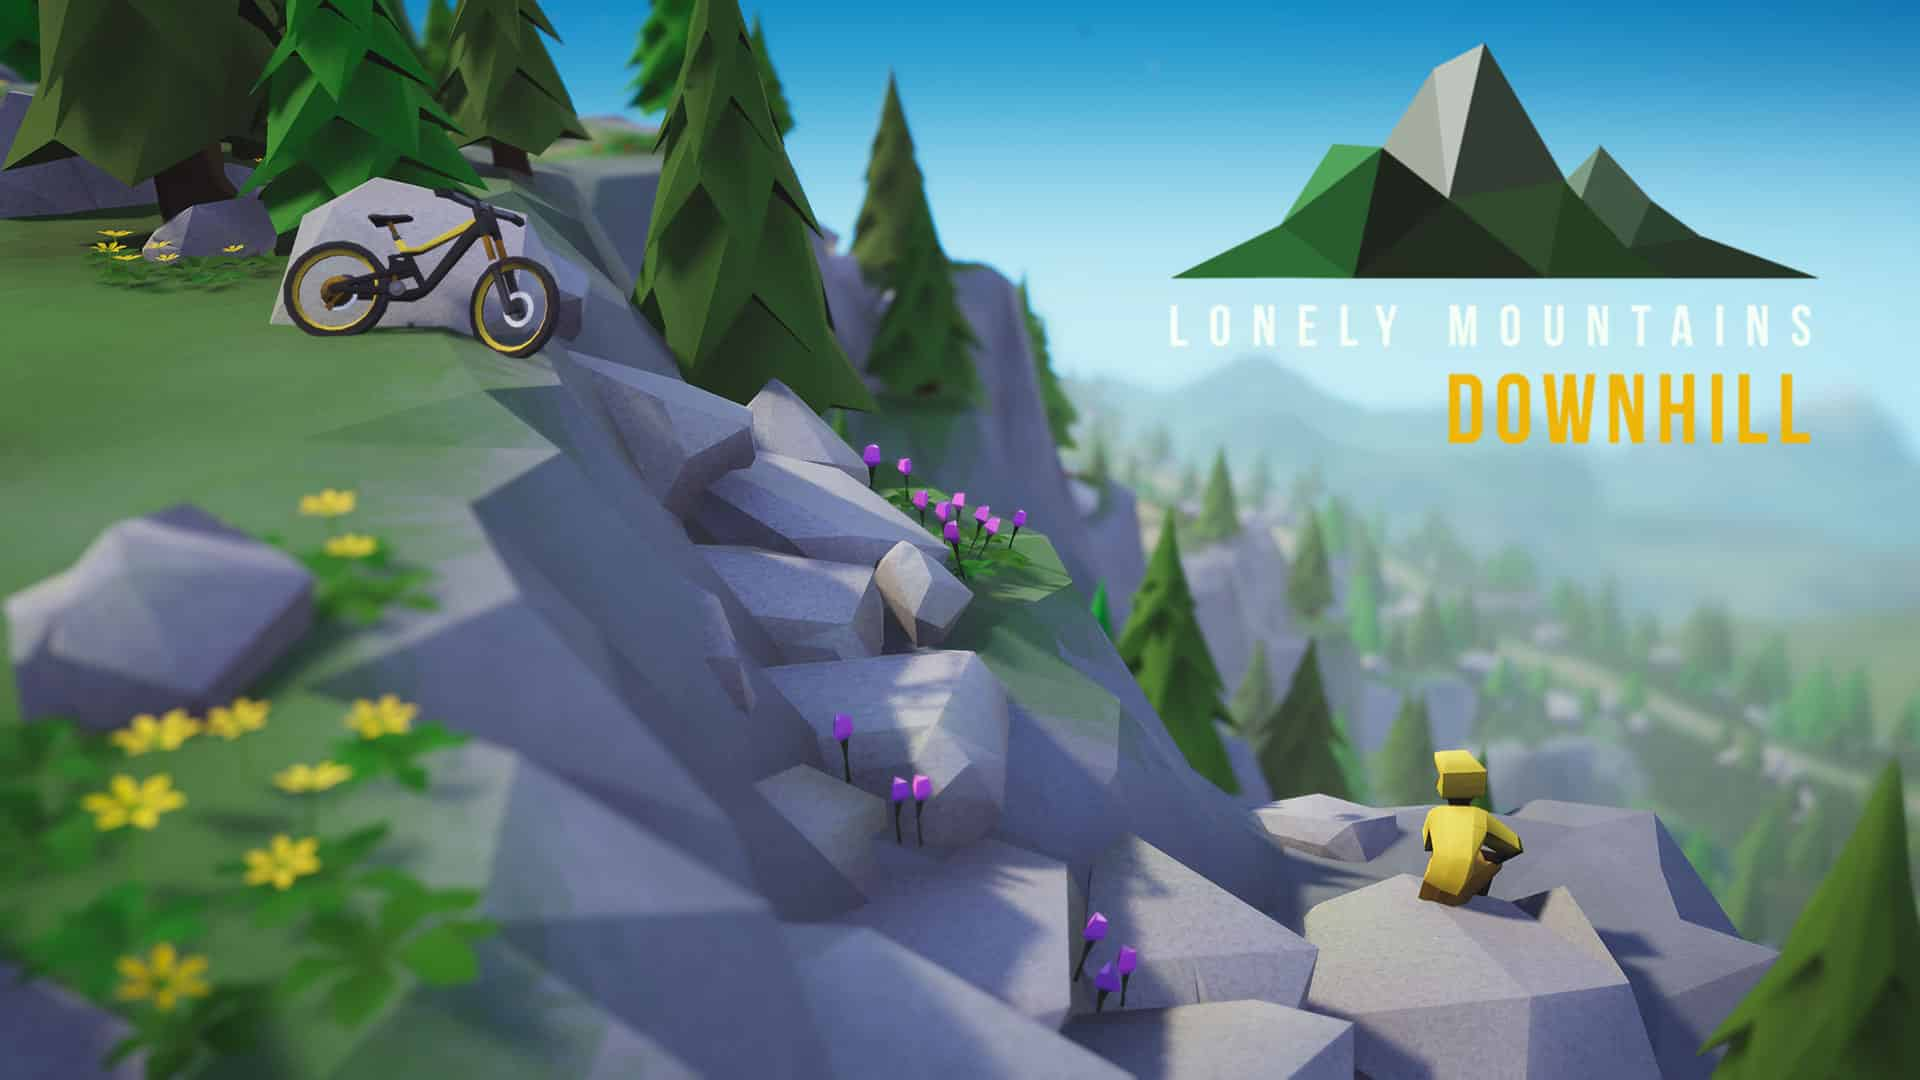 lonely mountains downhill angespielt